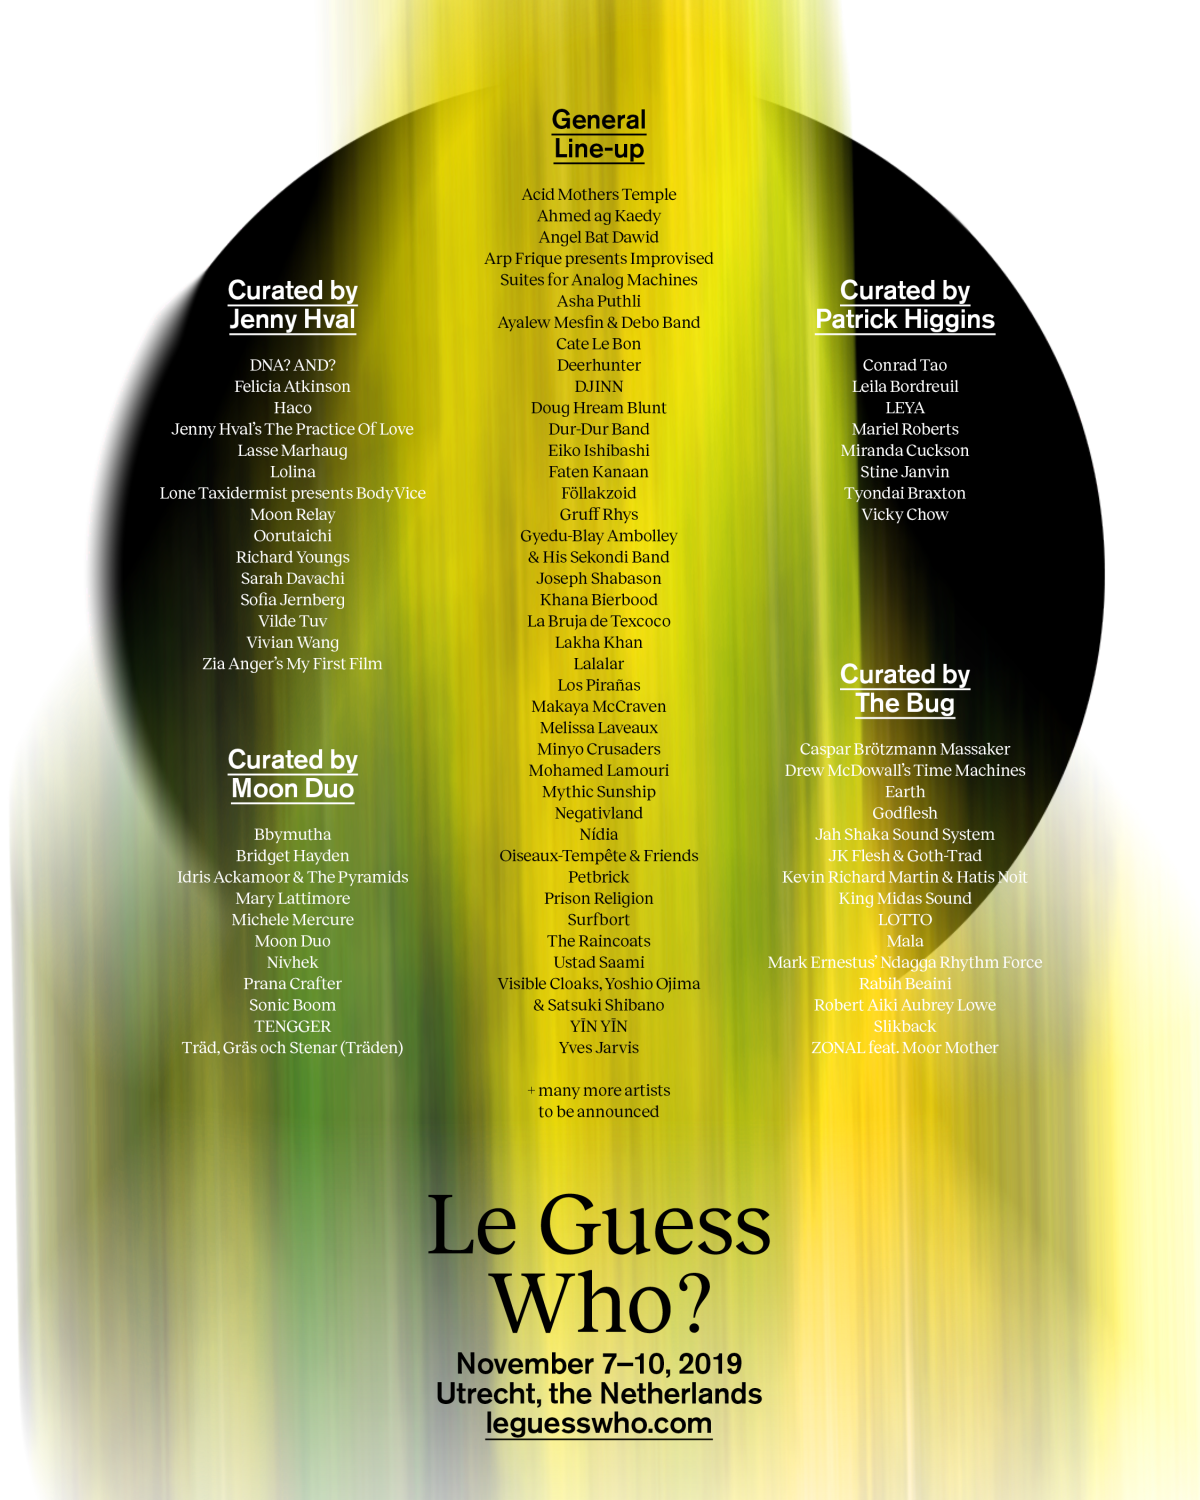 Le Guess Who lineup